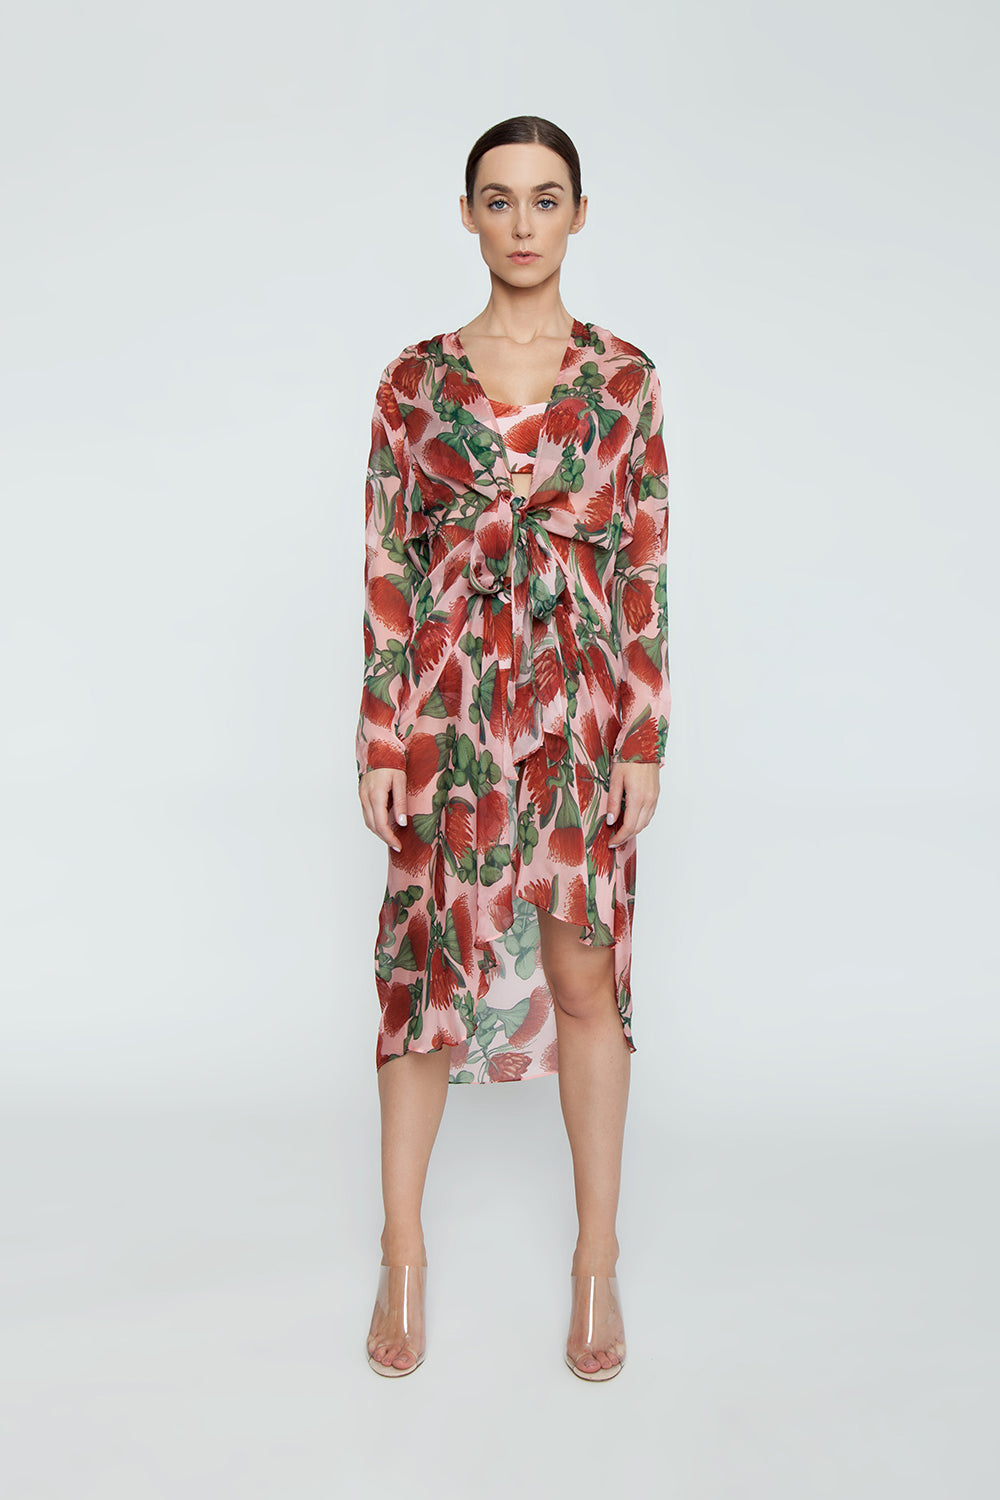 1538be5b6a ... ADRIANA DEGREAS Silk Muslin Long Robe Cover-Up - Fiore Rose Print -  undefined undefined